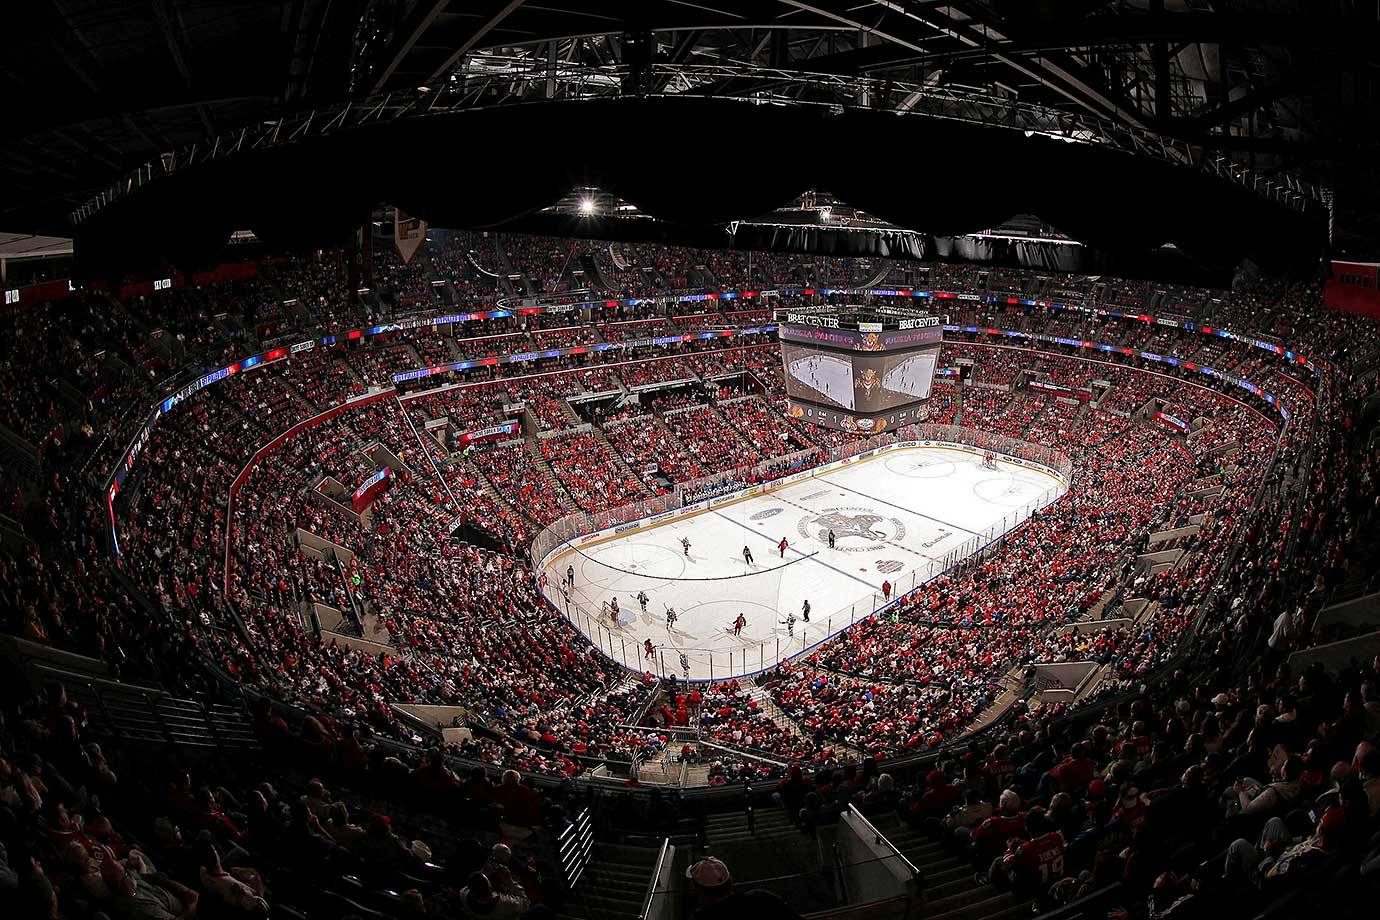 A sold out crowd watches the Florida Panthers battle the Chicago Blackhawks at the BB&T Center in Sunrise, Fla.